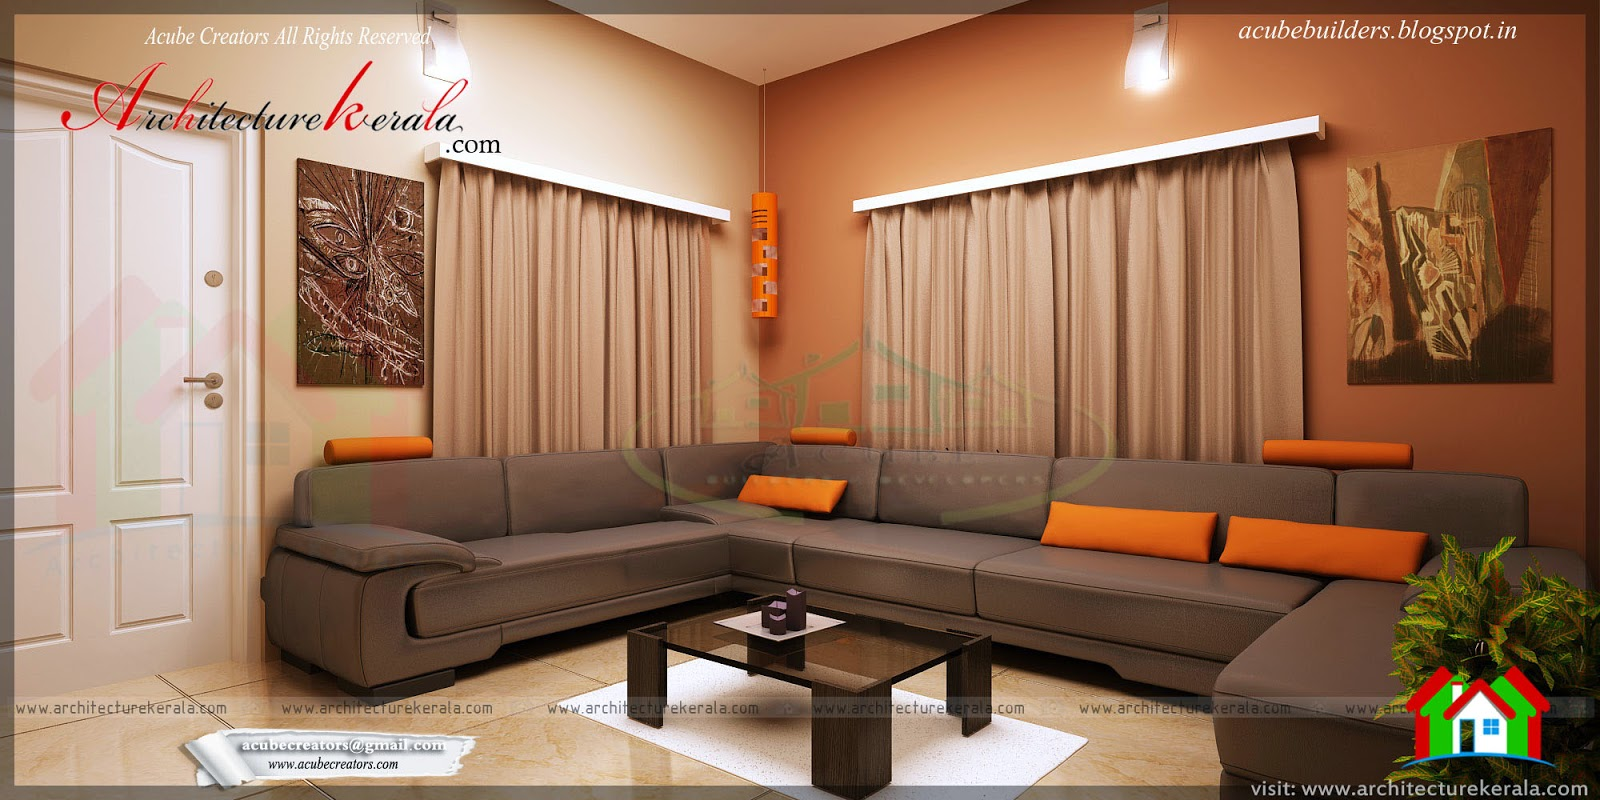 Drawing room interior design architecture kerala for Interior designs in kerala